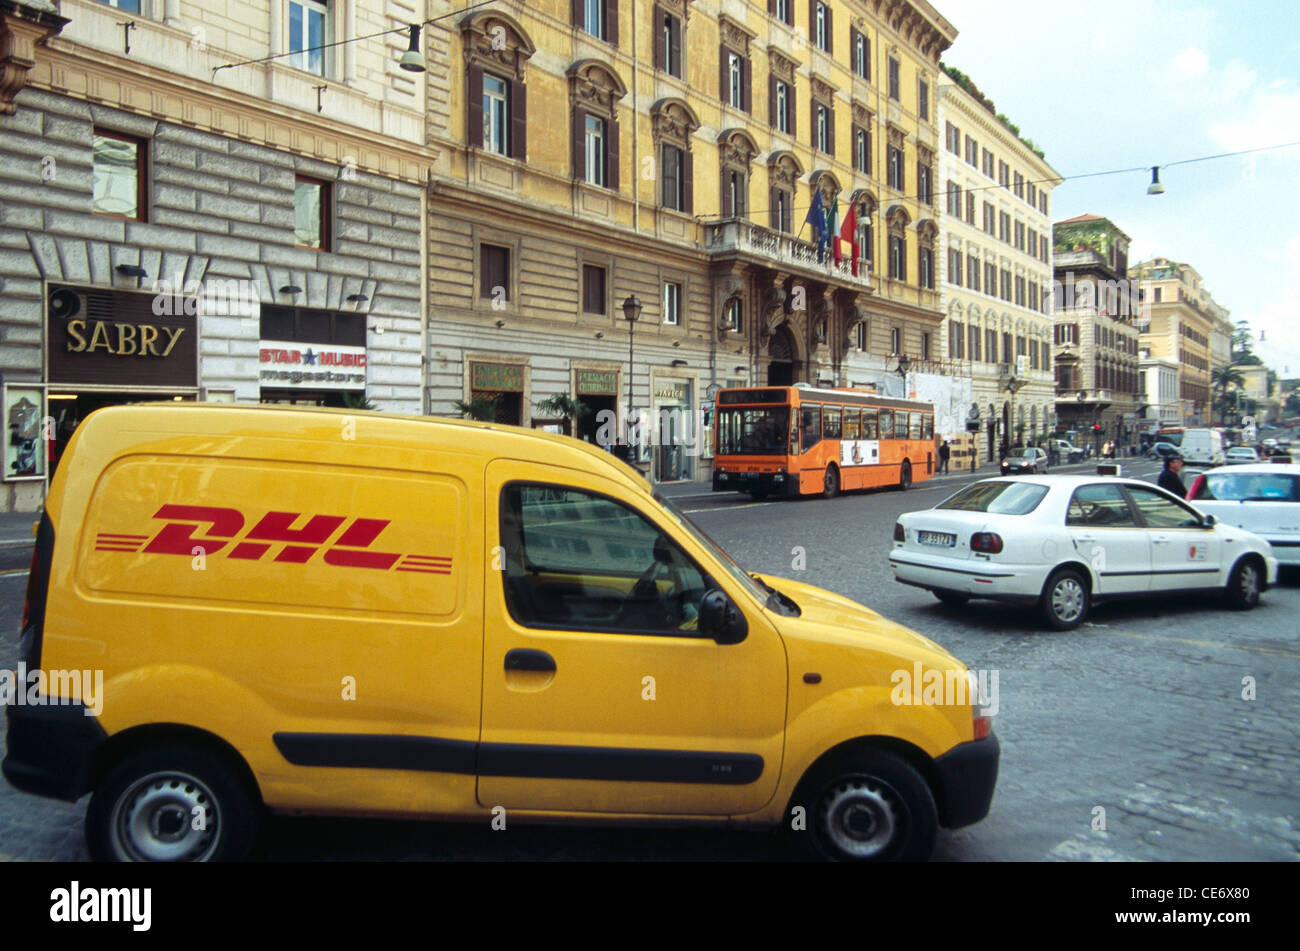 Dhl Pickup Locations >> Hma 85477 Dhl Couriers Pickup And Delivery Van Rome Italy Europe